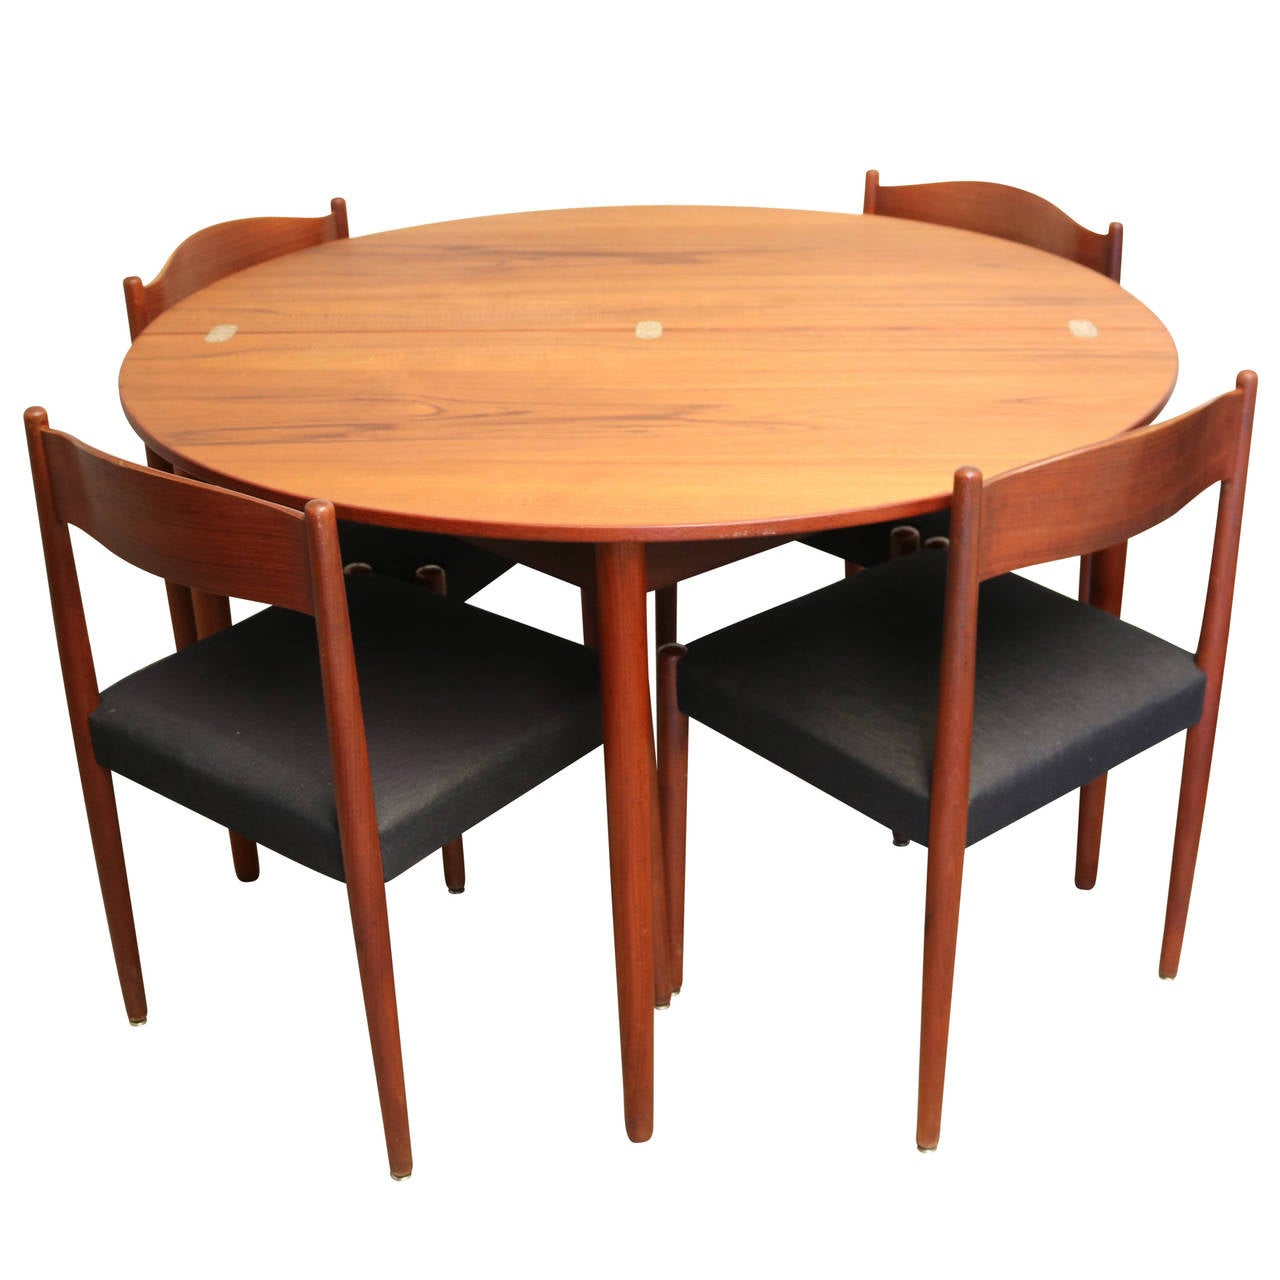 Round teak folding dining table and chairs by poul volther for Round dining table set